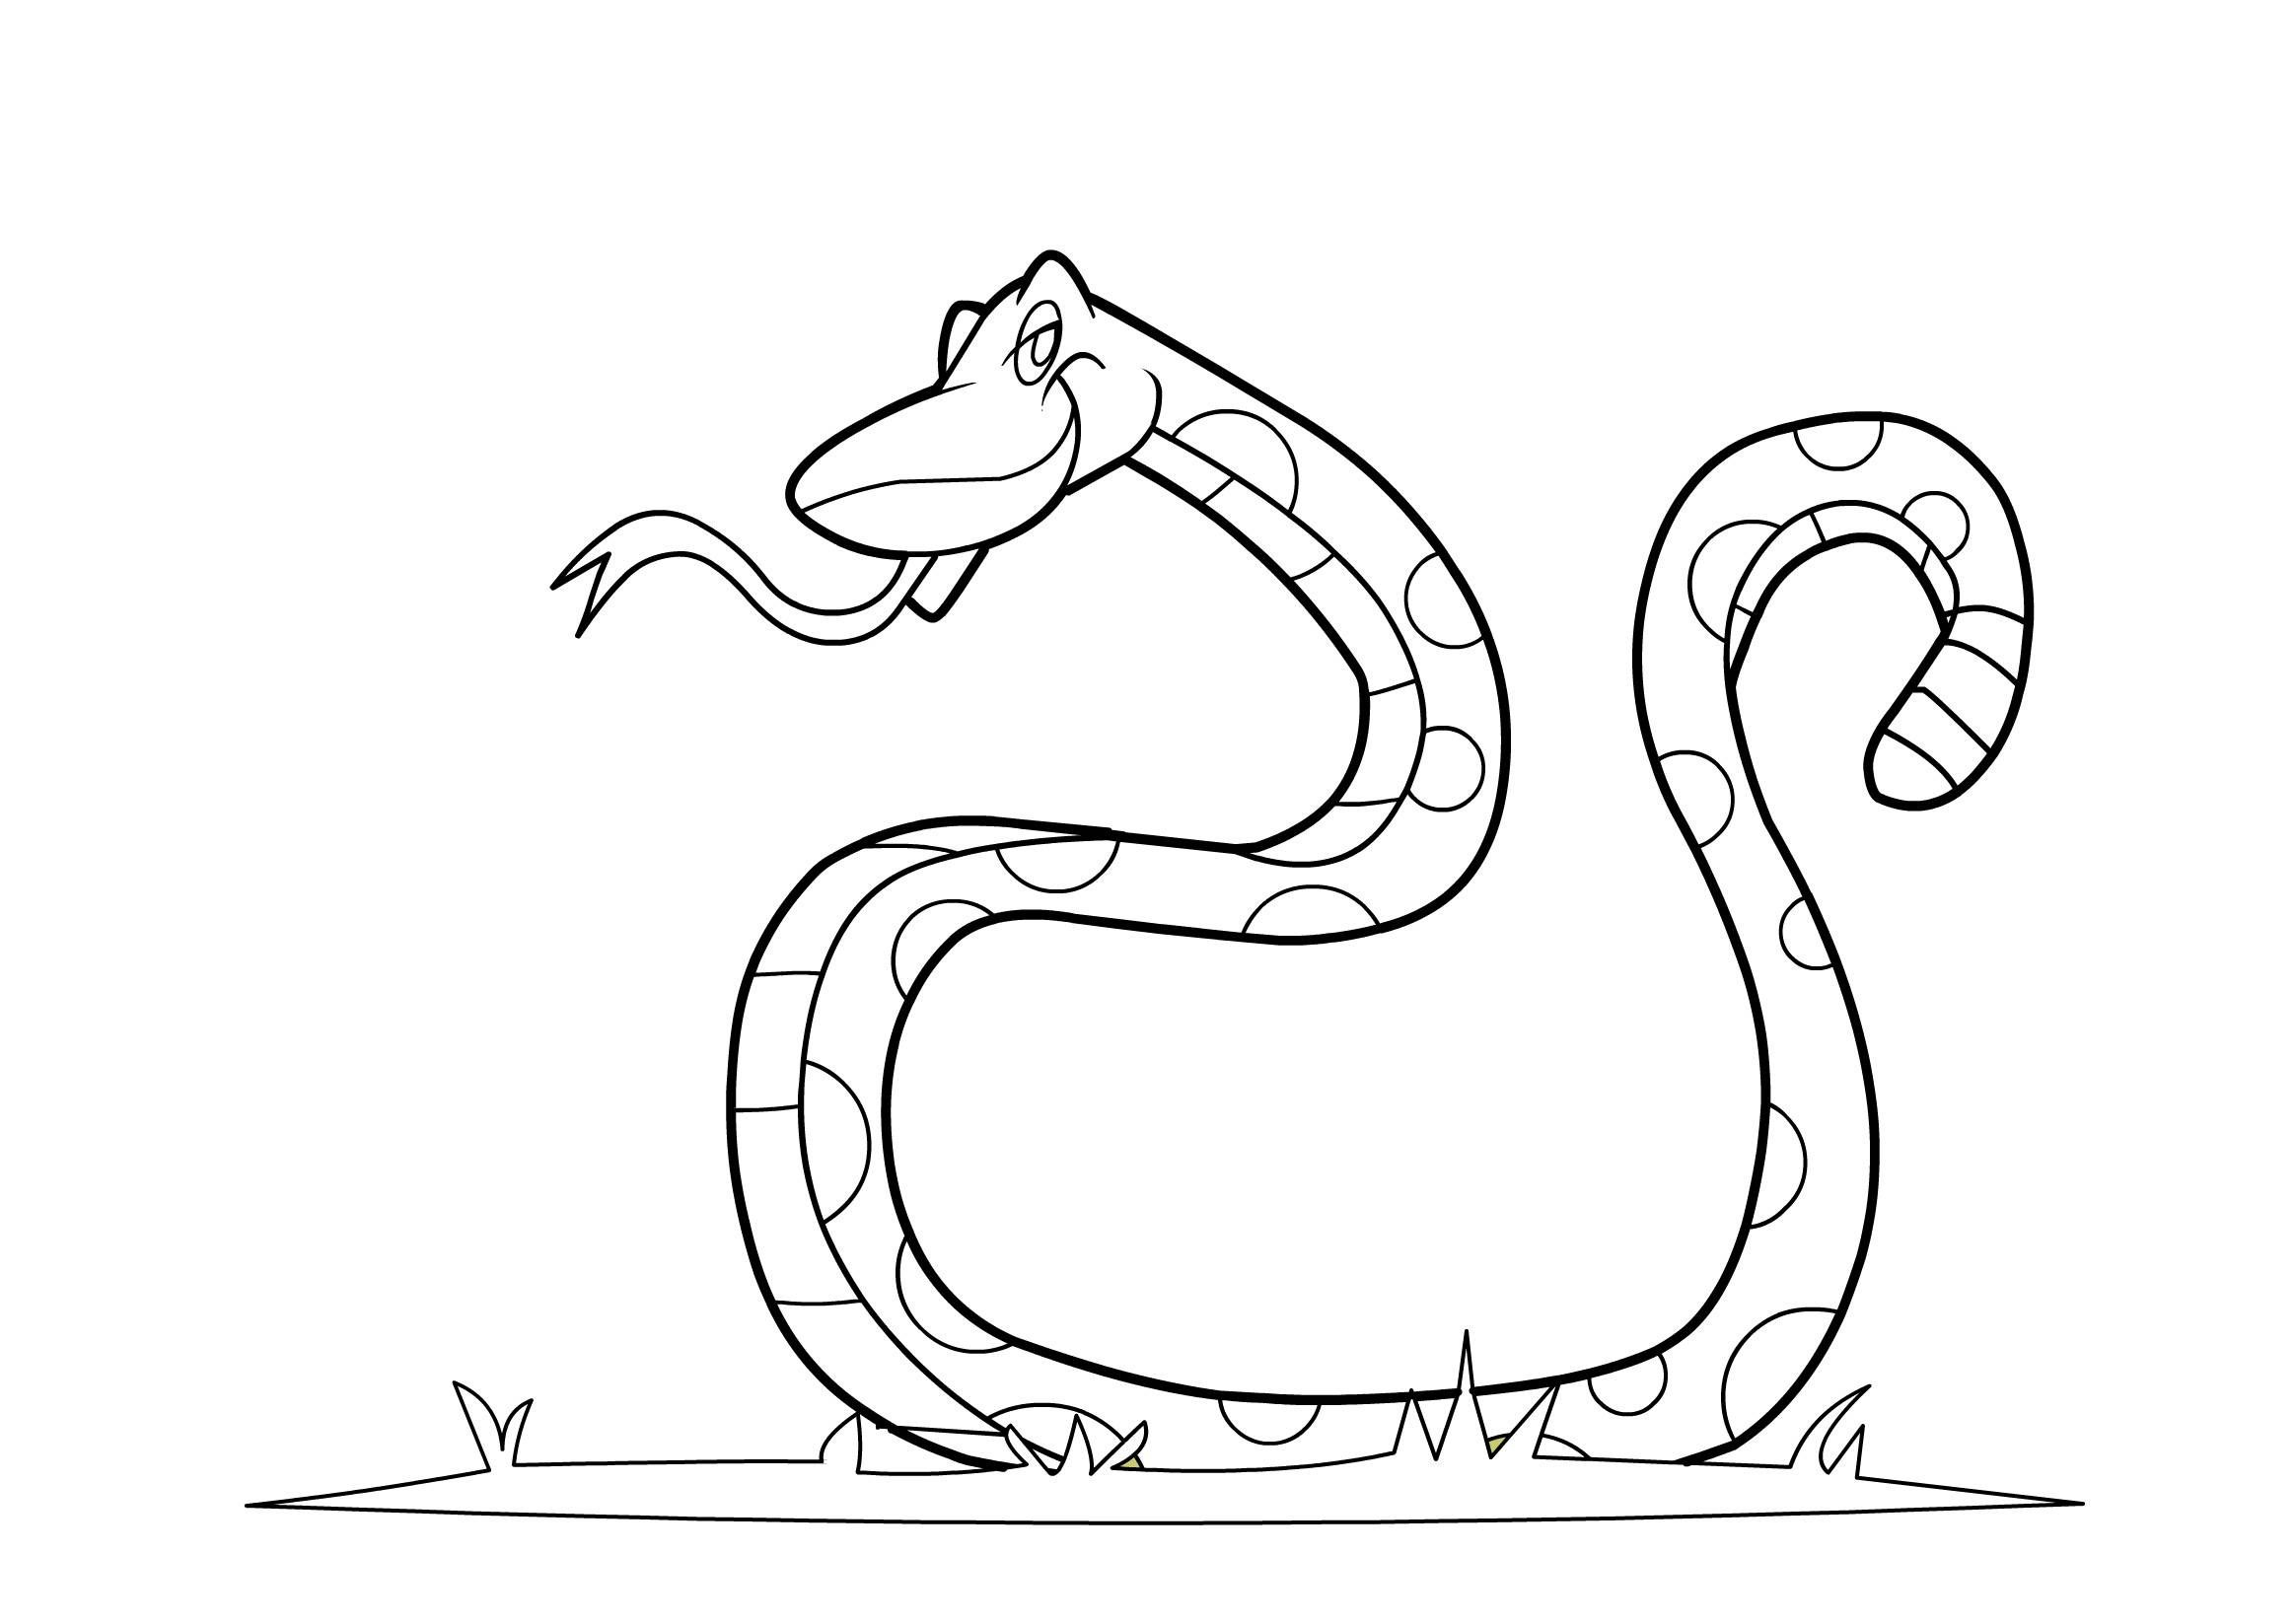 Snake To Print And Color